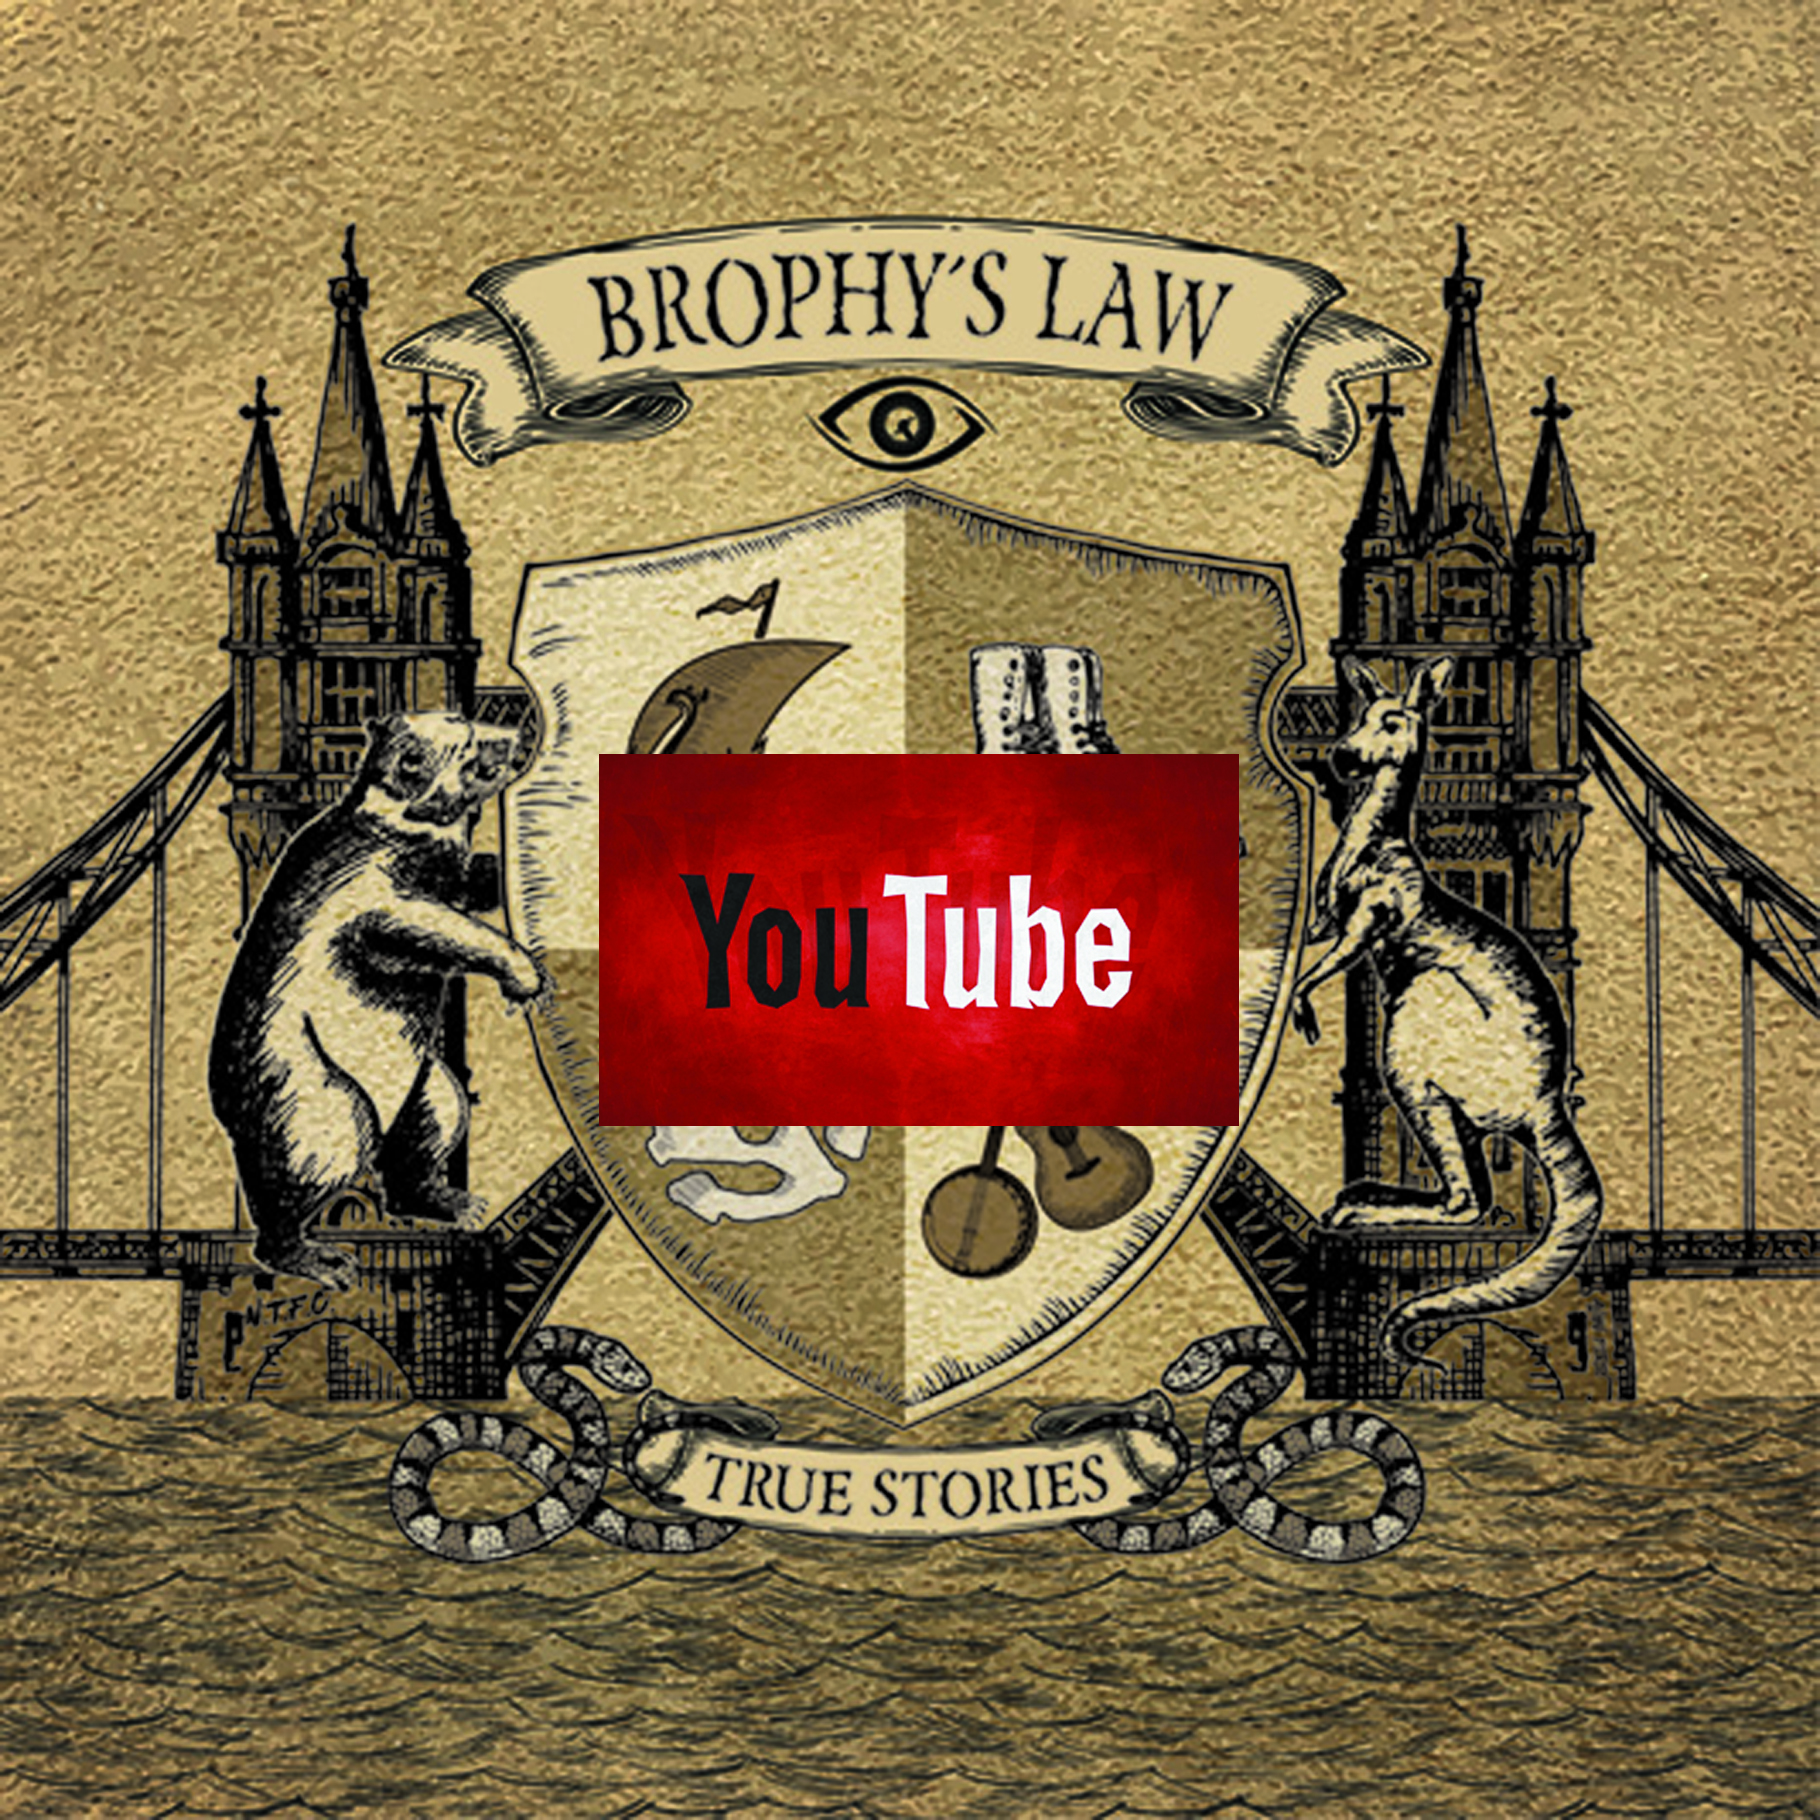 Brophys Law youtube